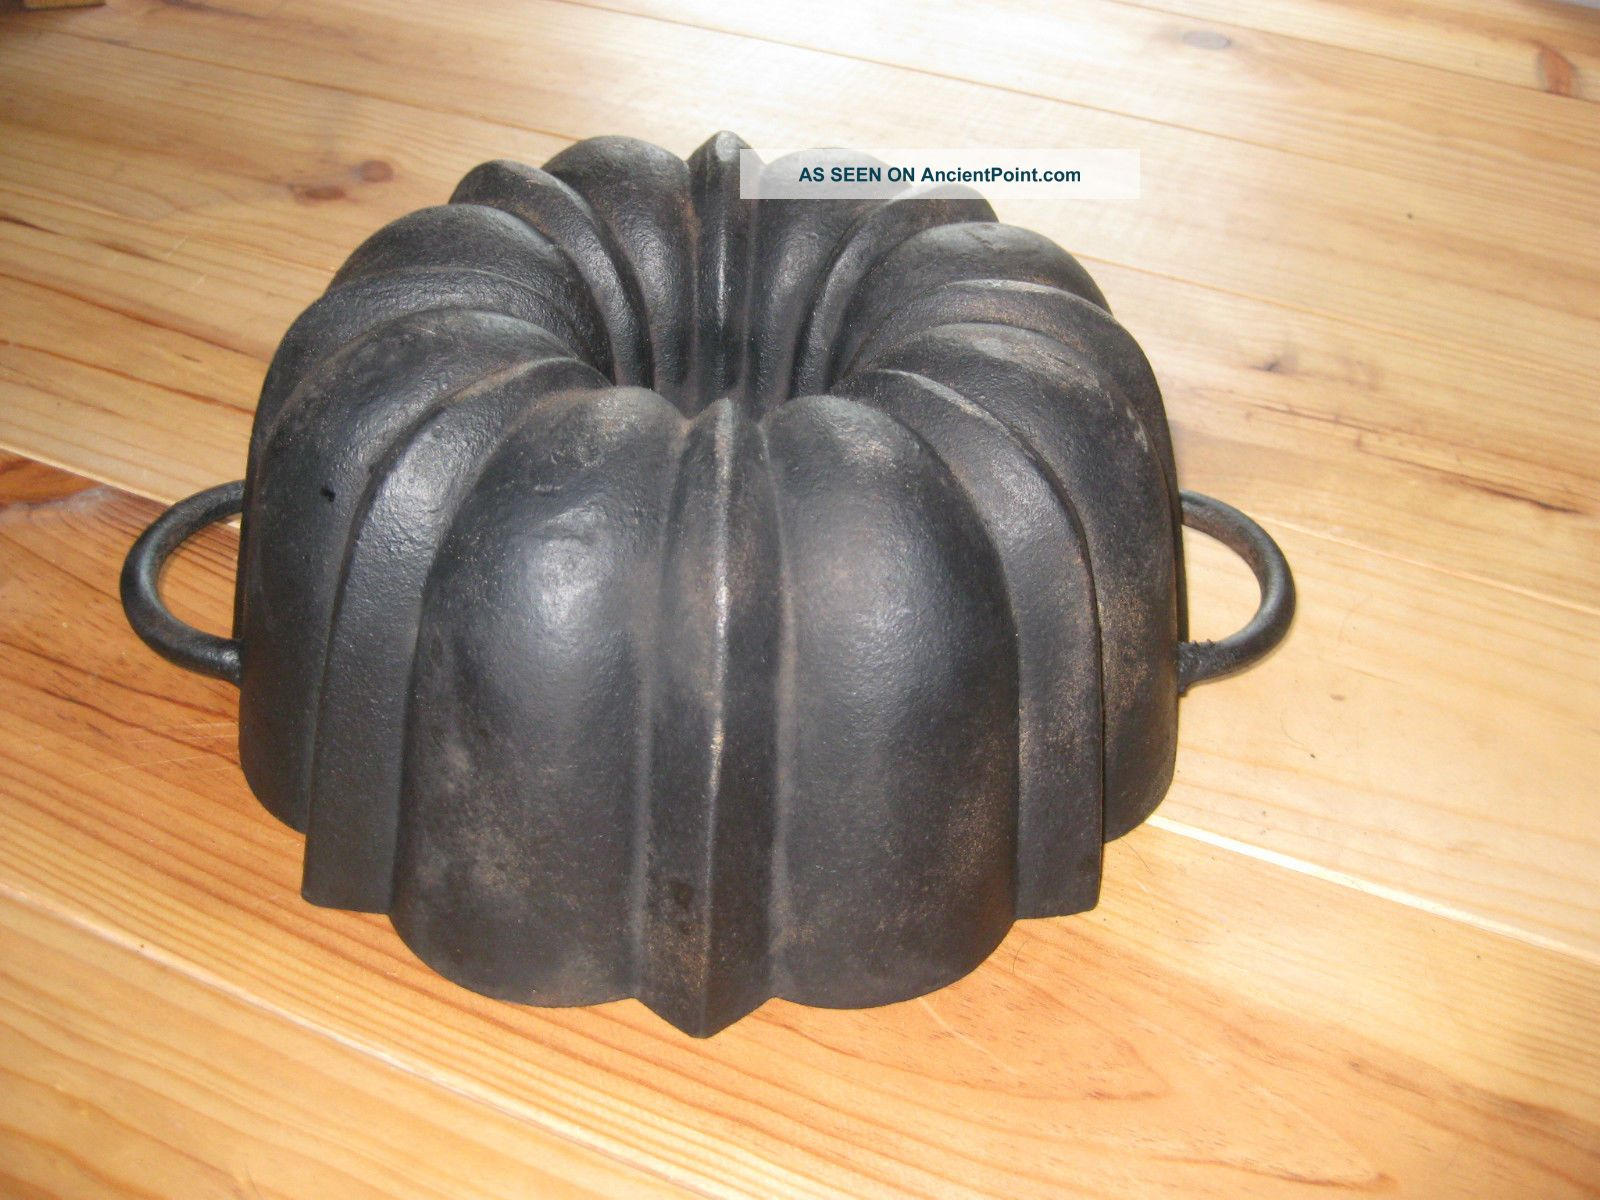 Very Old And Big Antique Cast Iron Bundt Pan Germany 3440 G Other Antique Home & Hearth photo